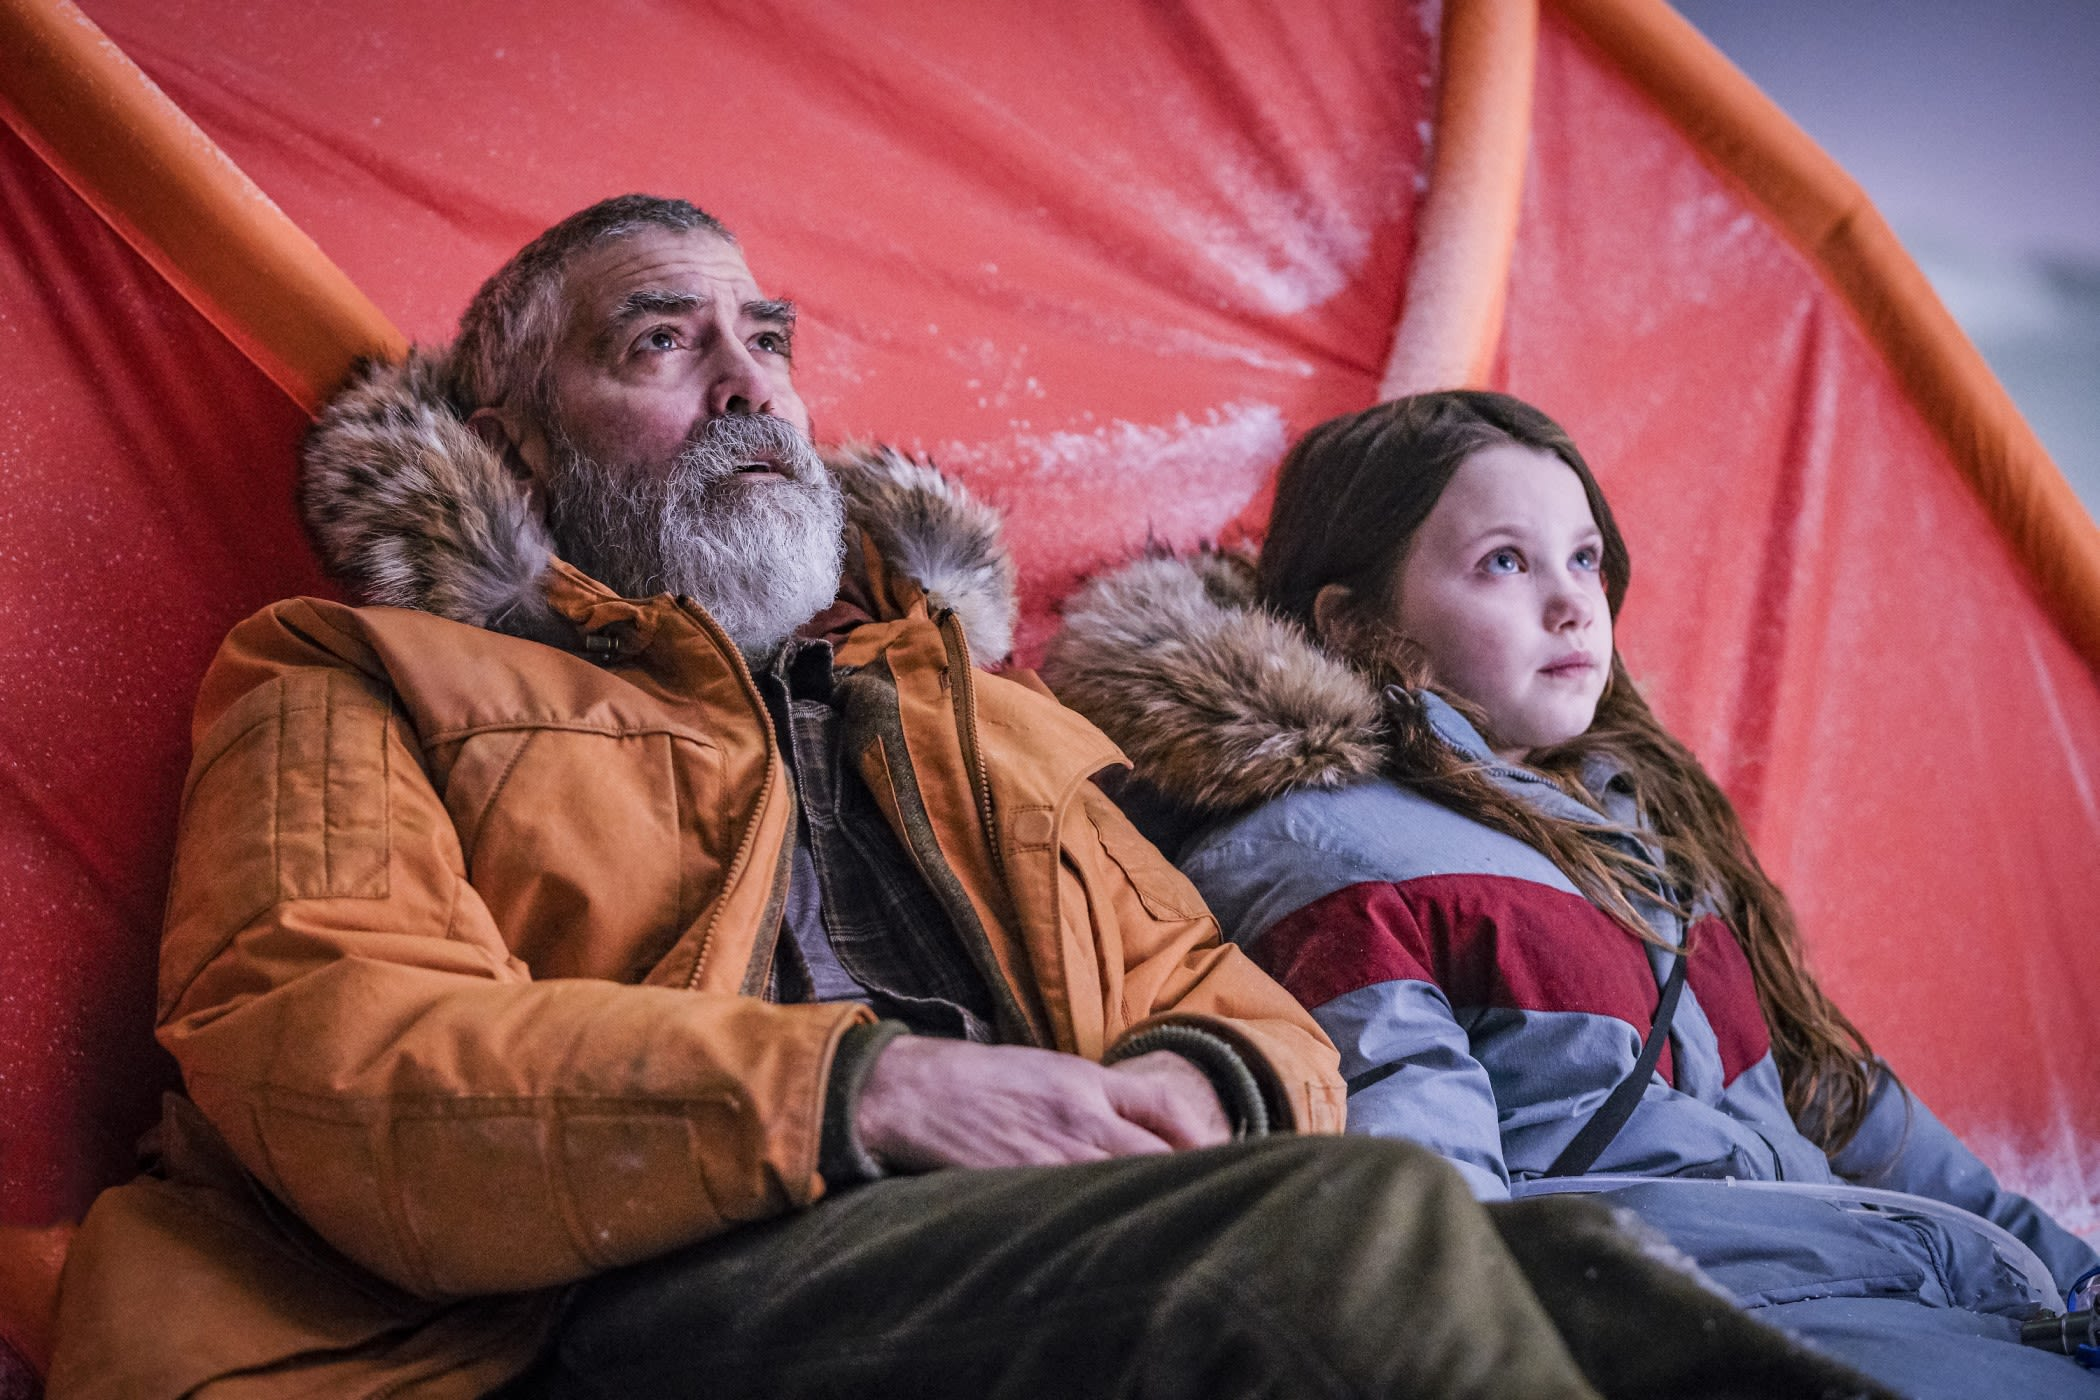 George Clooney pictured next to seven year old actress, Iris, leaning against a red tent-like structure